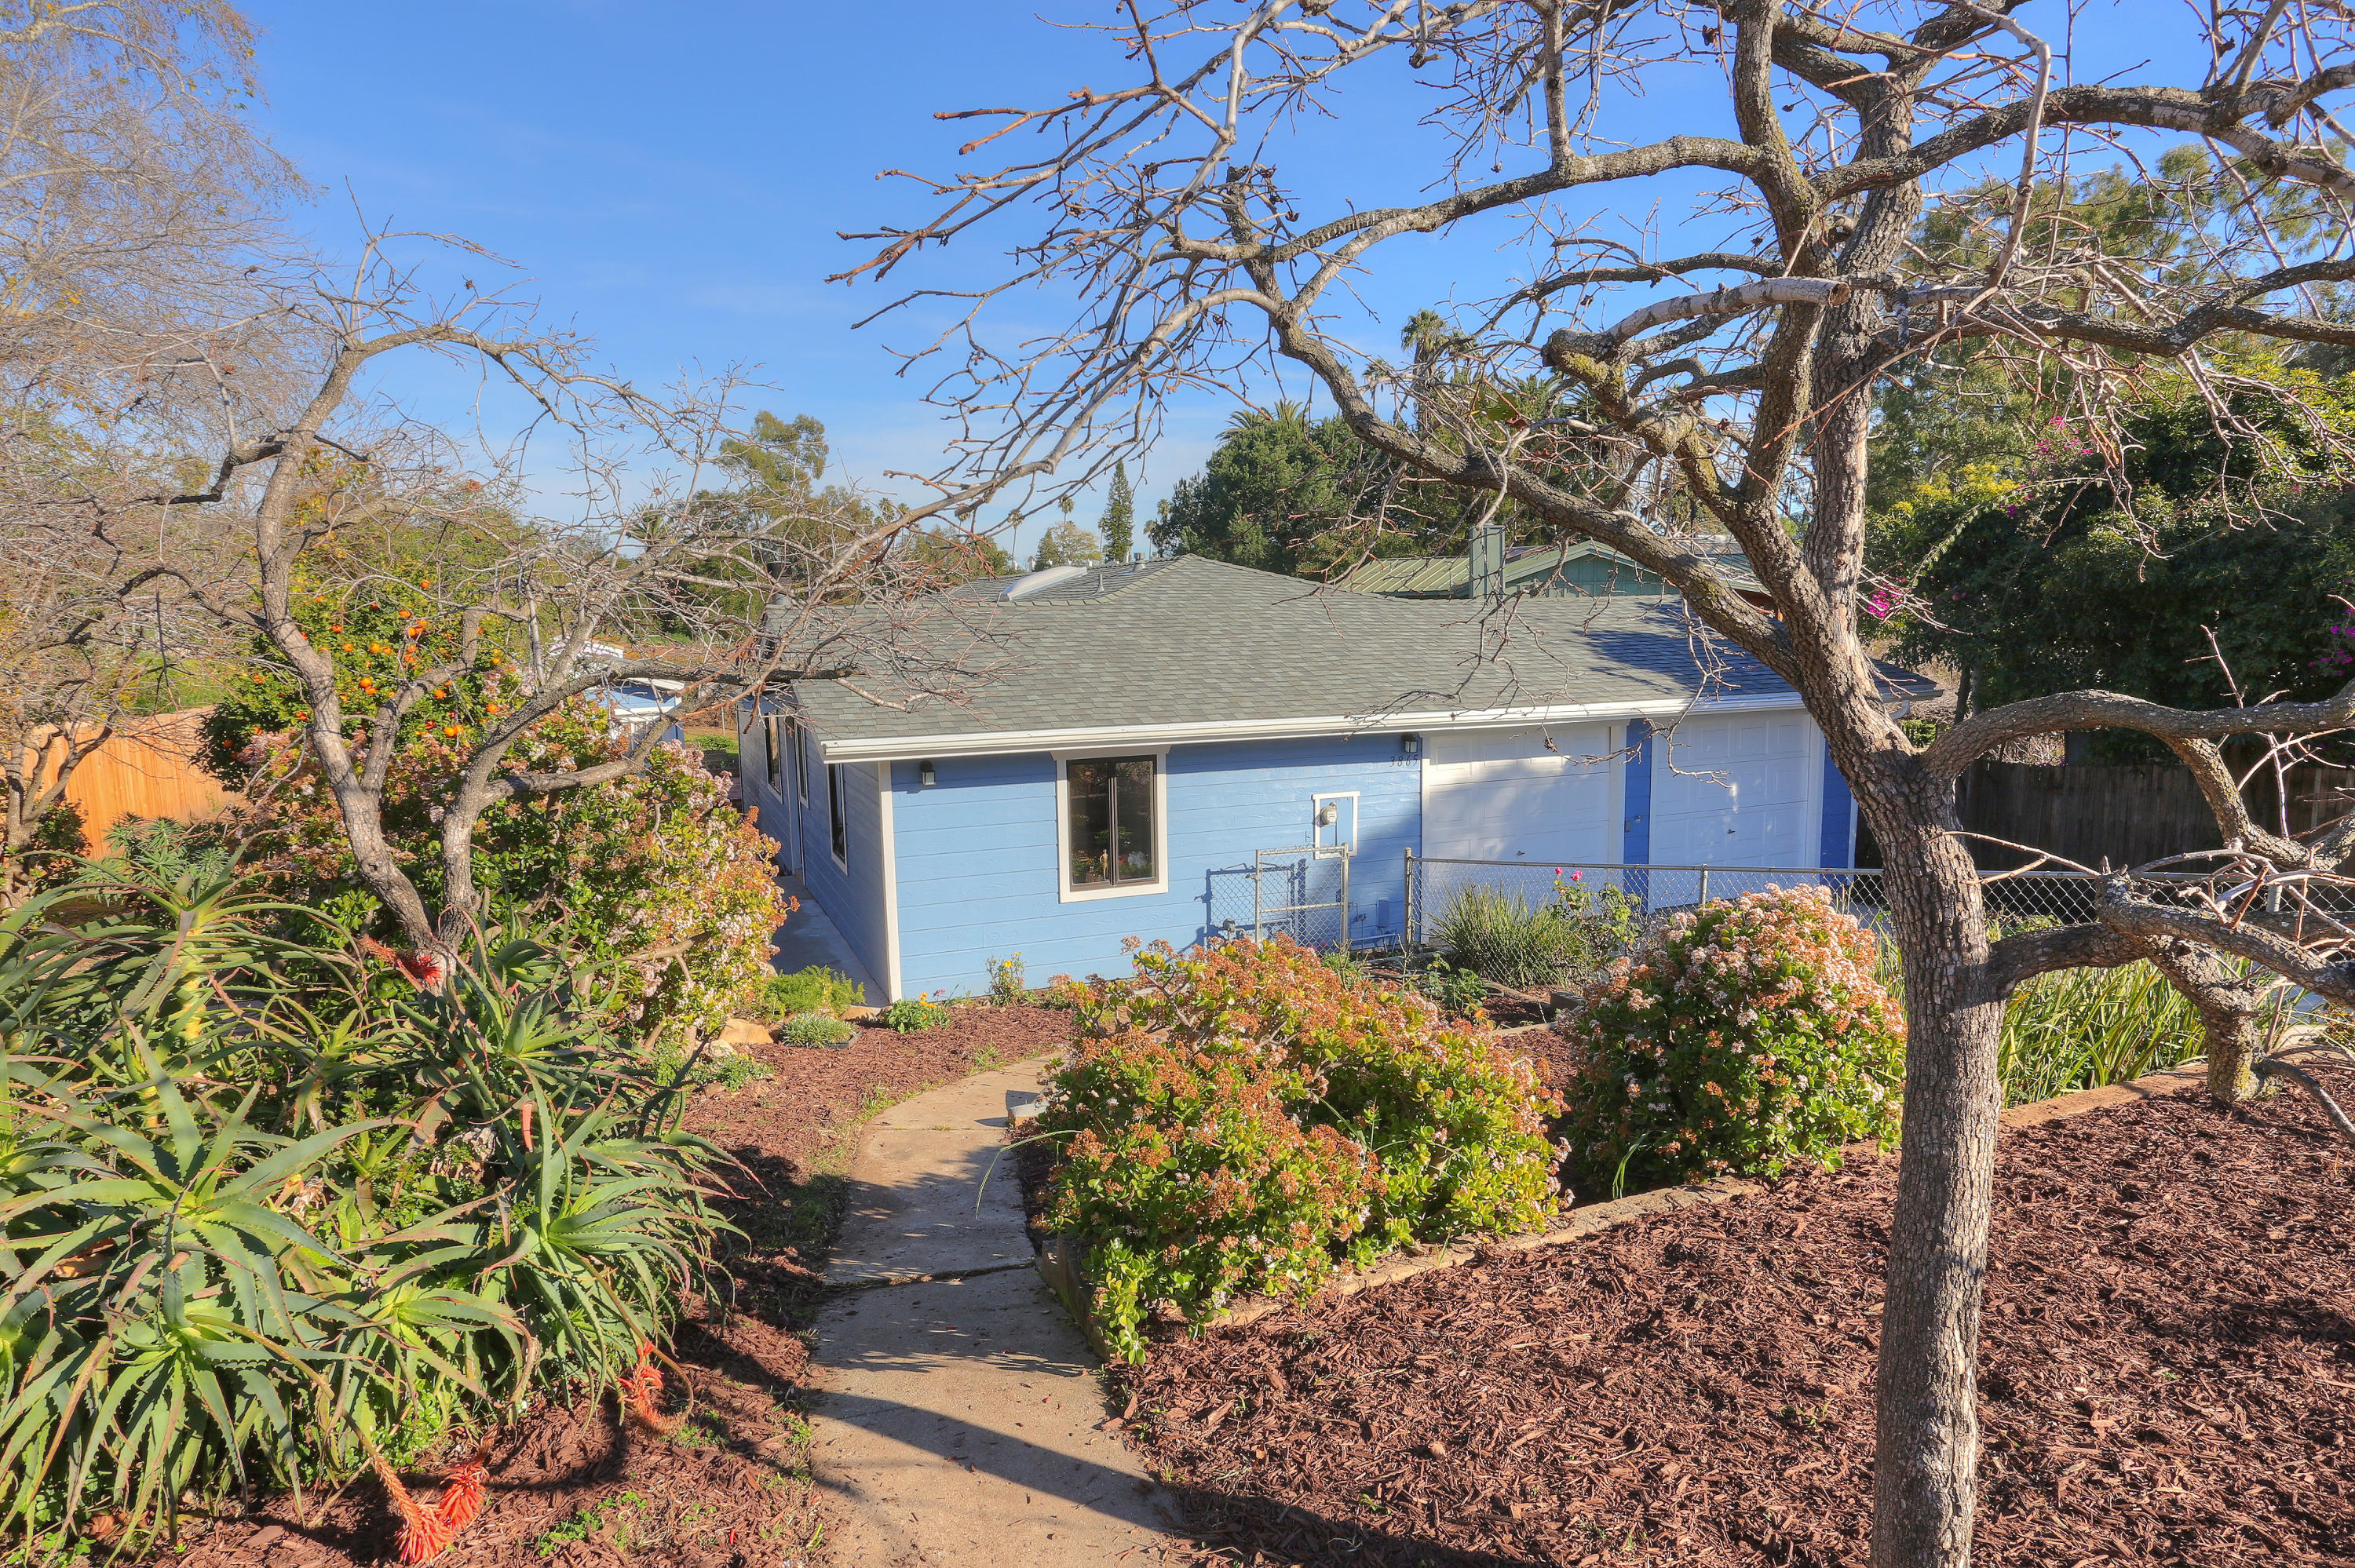 Property photo for 3865 Fairfax Rd Santa Barbara, California 93110 - 17-366